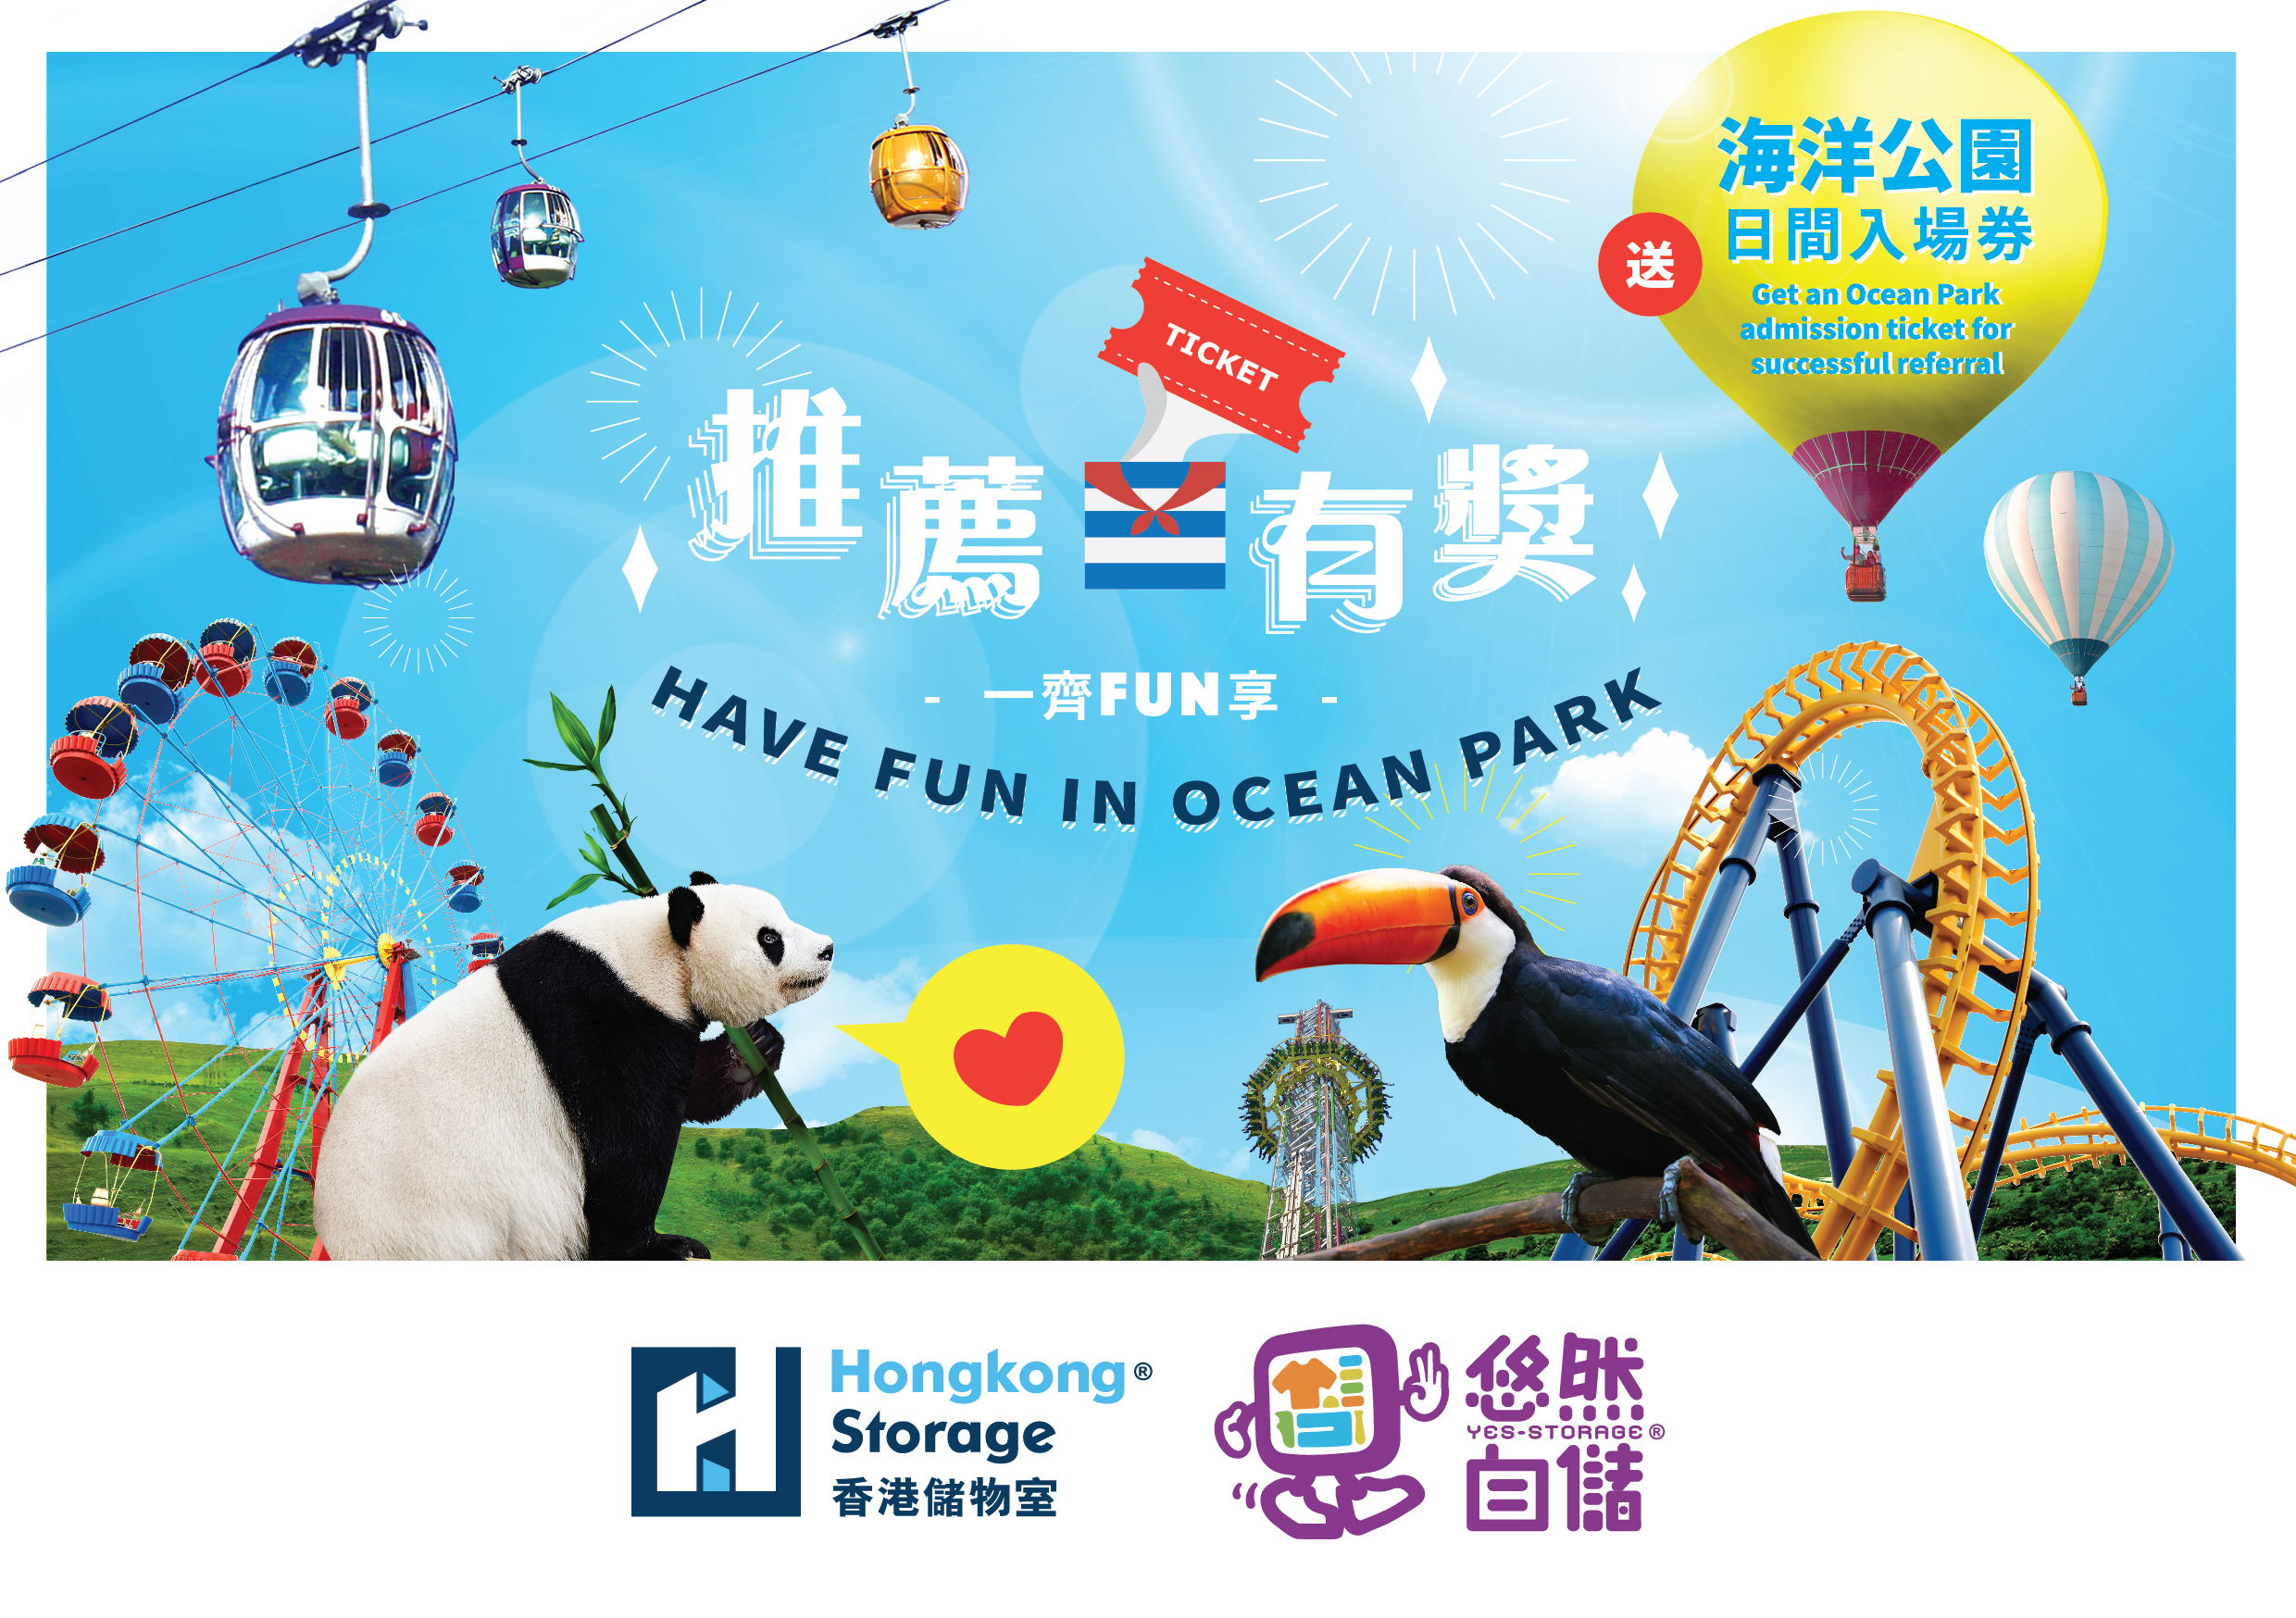 hongkong-storage-ocean-park-referral-program